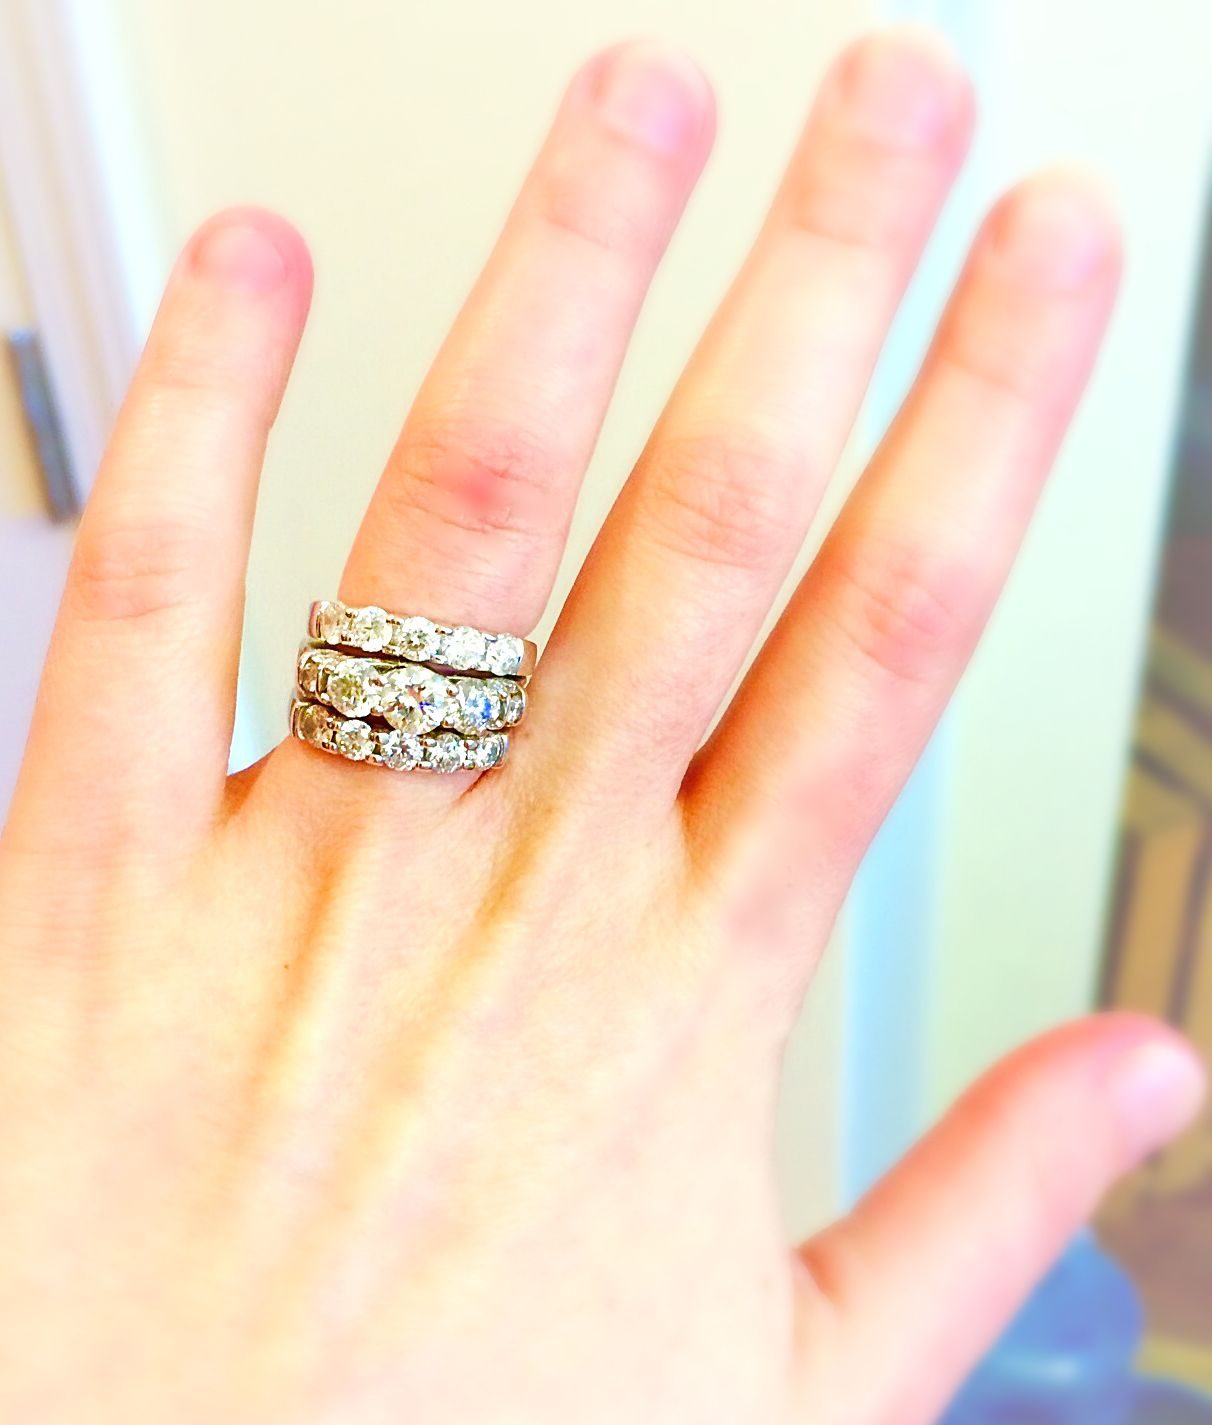 My Rings Are Complete 3 Stone Engagement Ring 2 5 Carats Total Weight With Side Stones On Shoulder Halo Style Rings 3 Stone Engagement Rings Stone Engagement